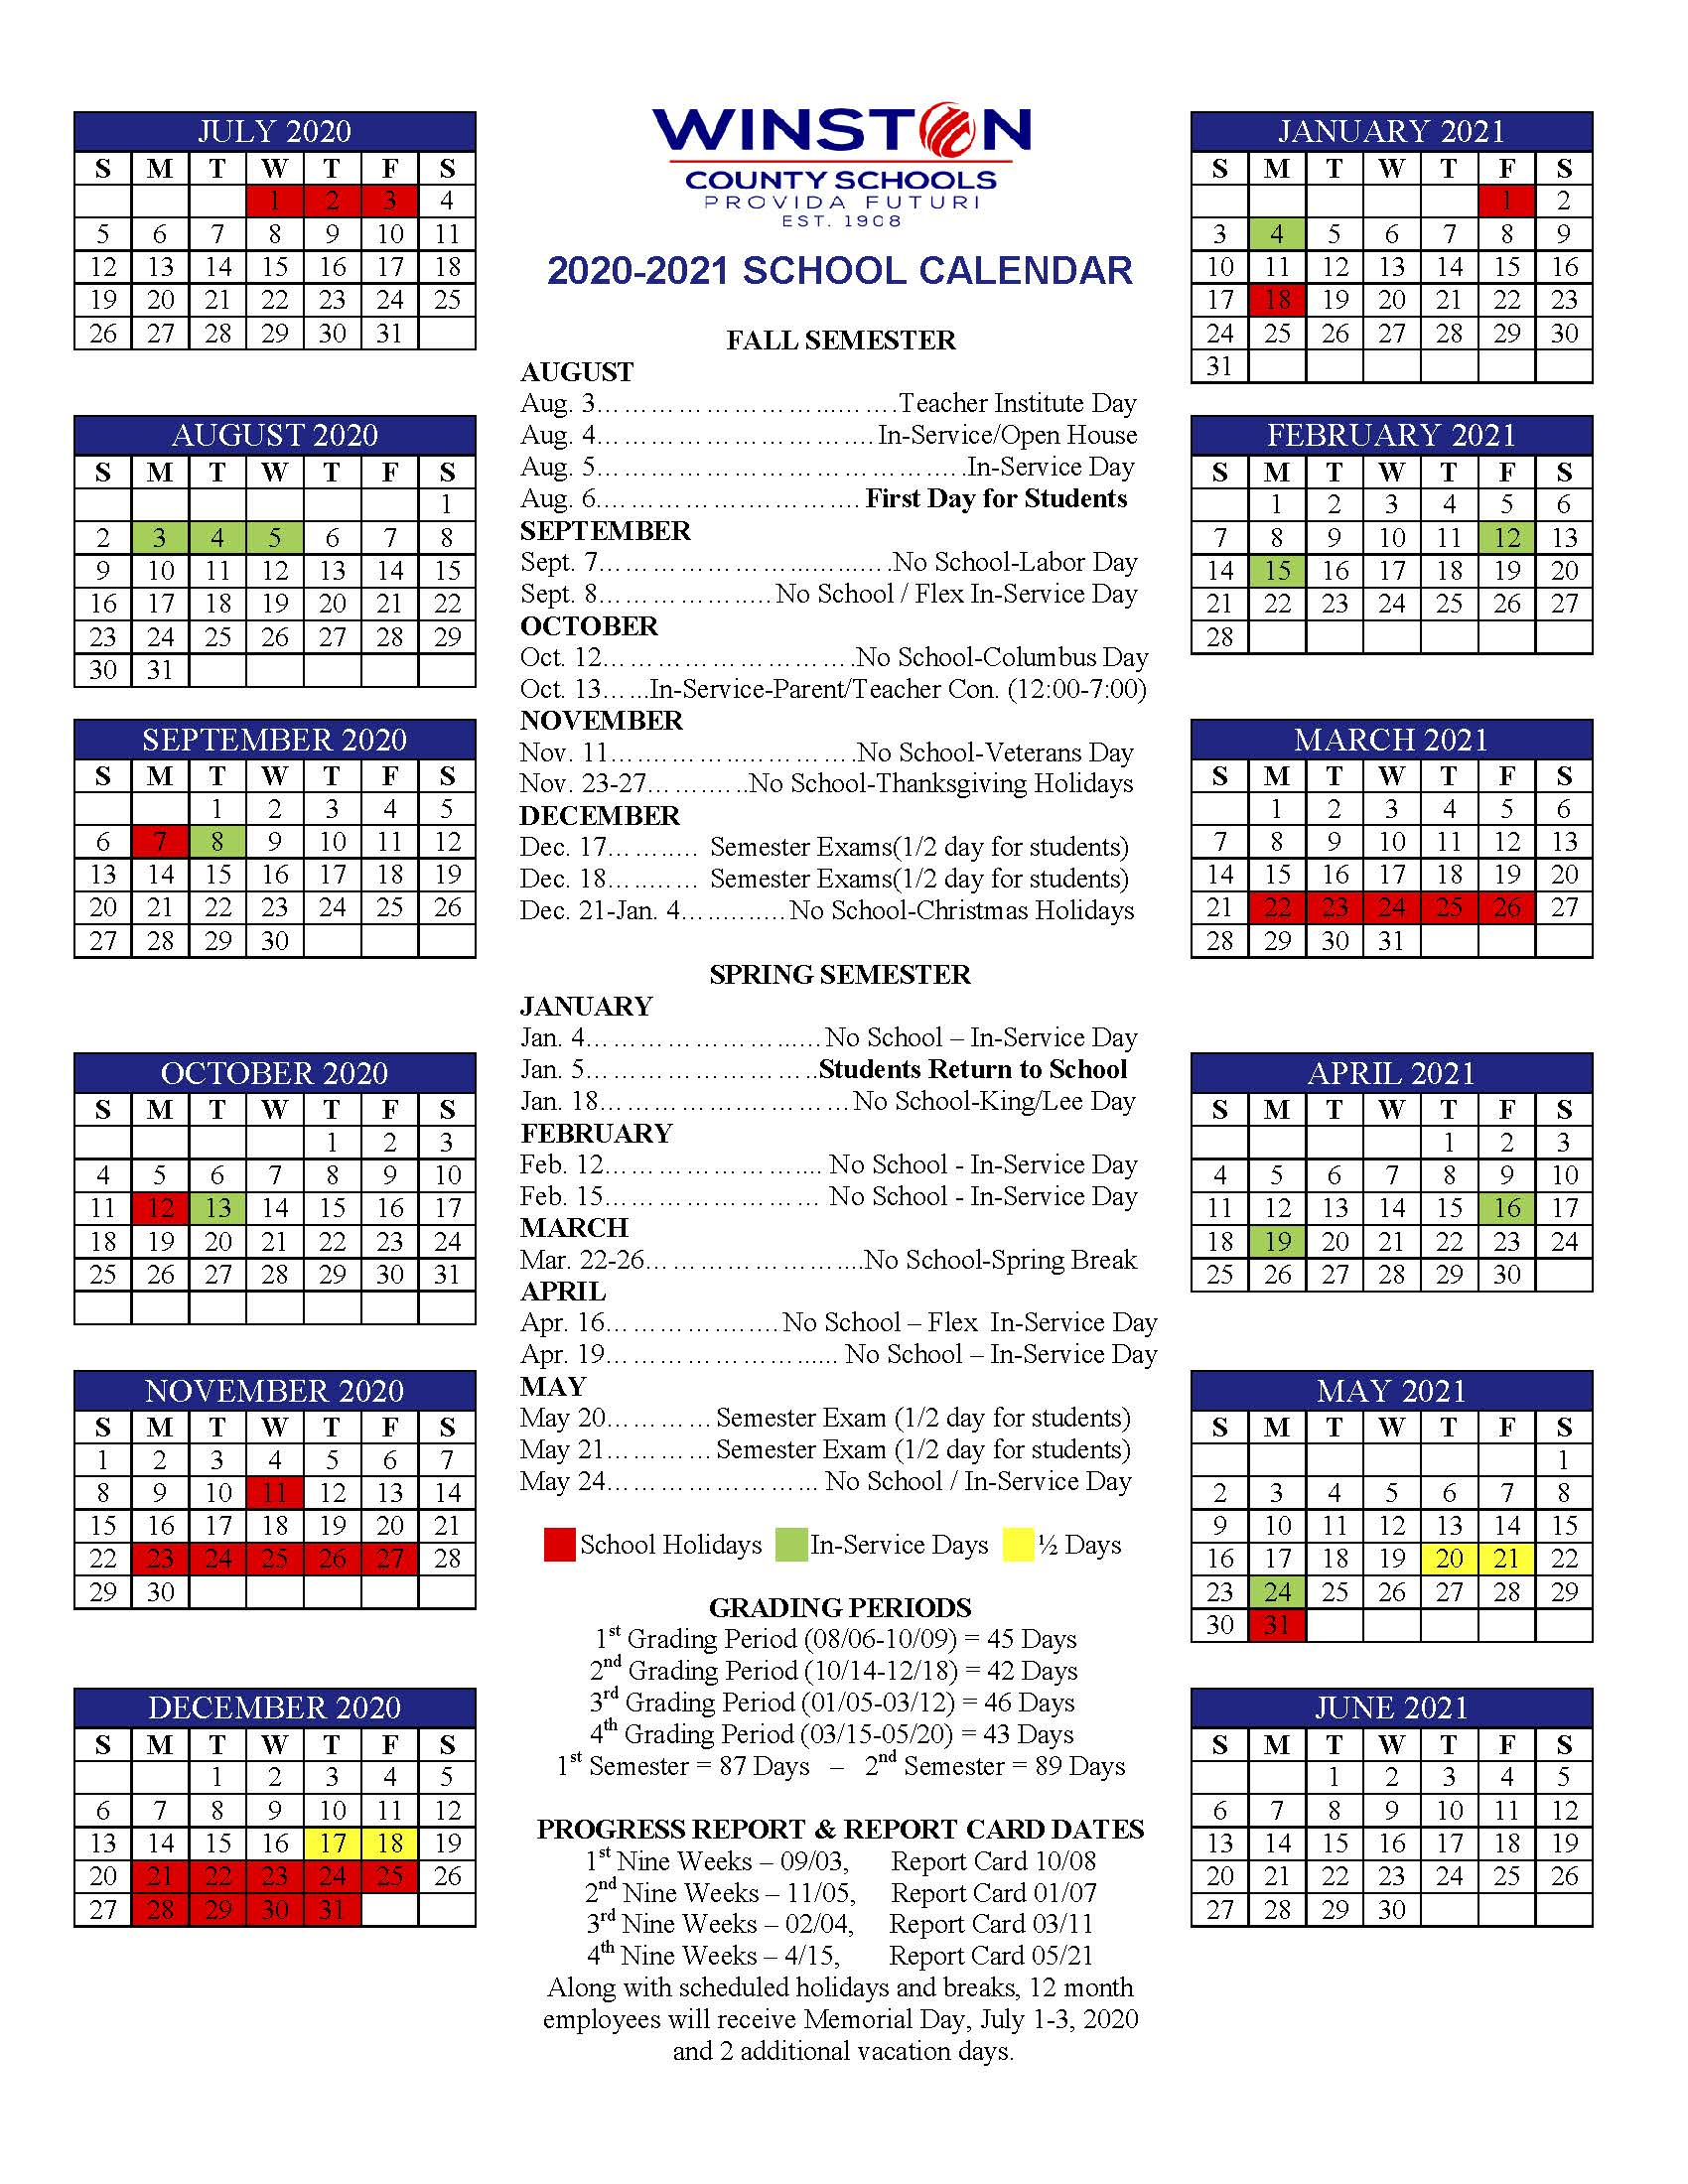 Winston County Schools Calendar, 20202021 | Northwest Alabamian intended for Broadcast Calendar 2021